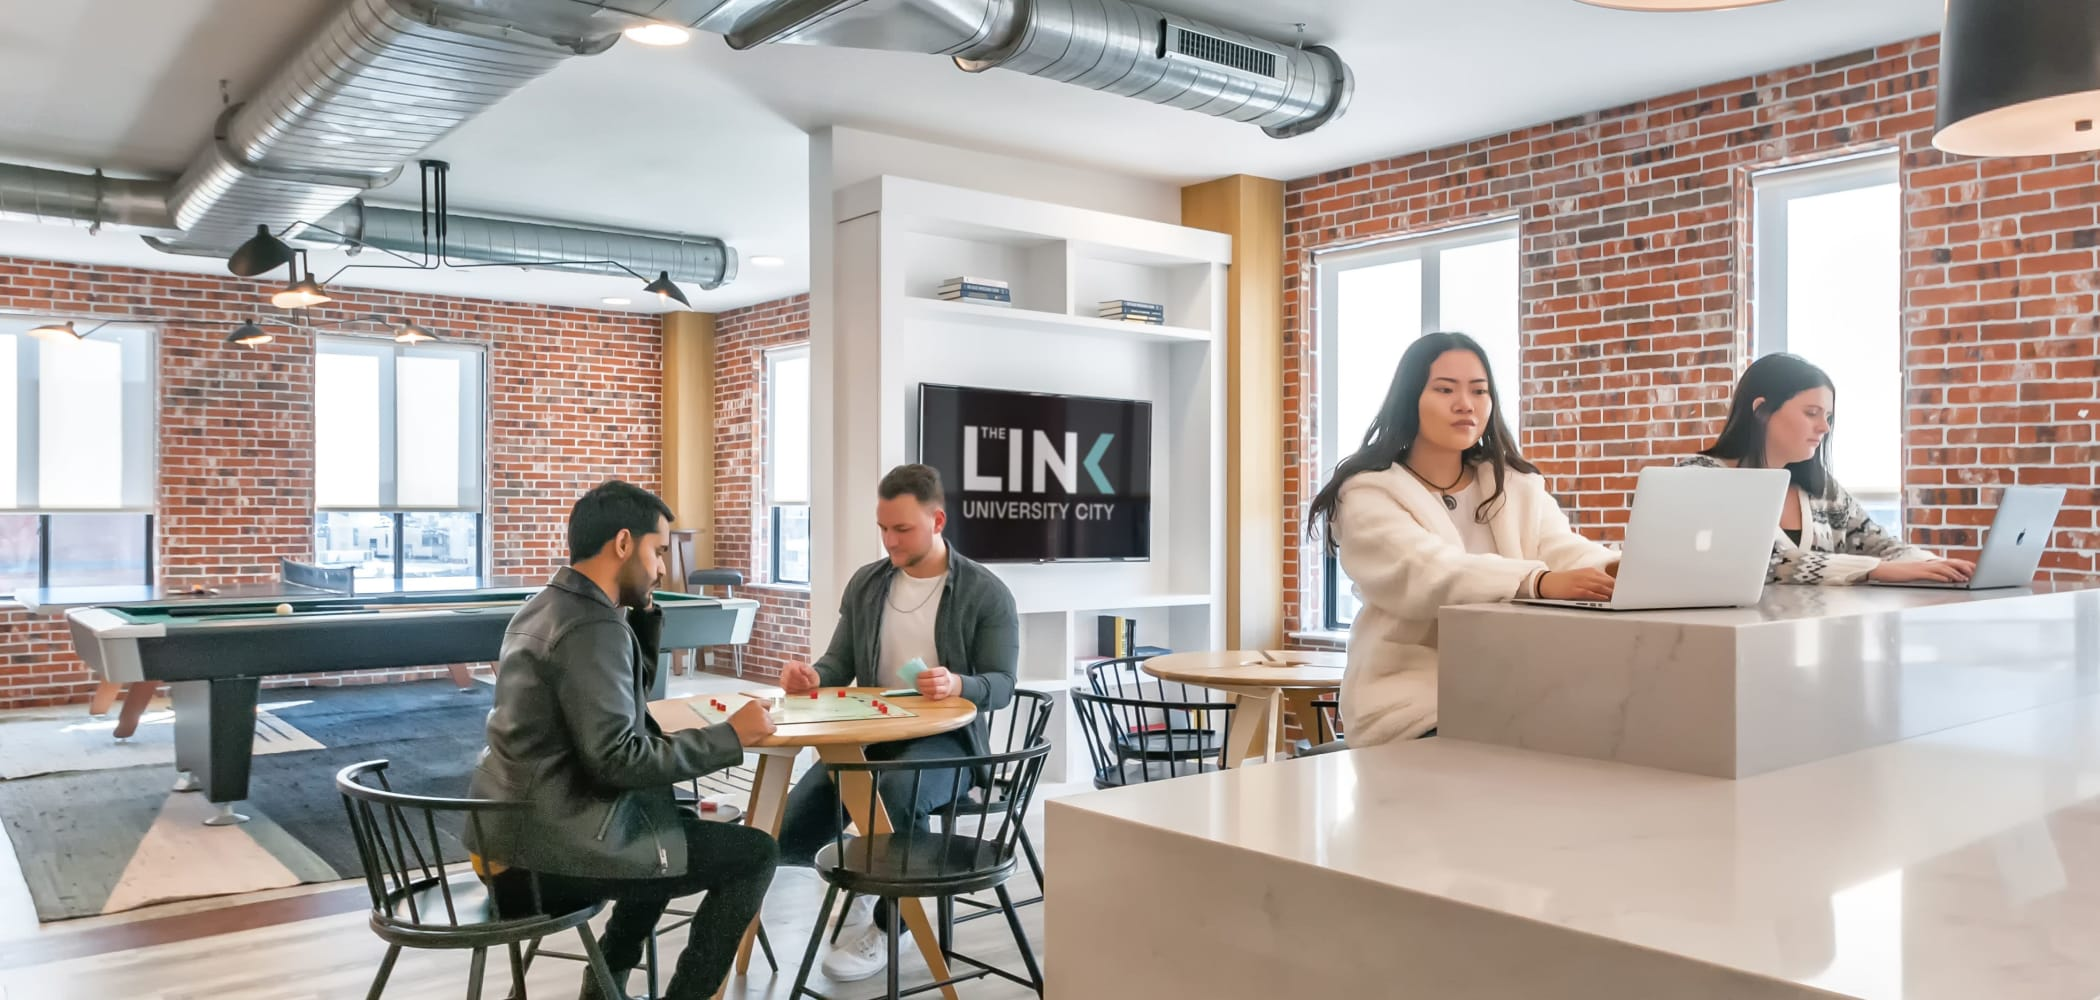 Clubroom at The Link University City in Philadelphia, Pennsylvania